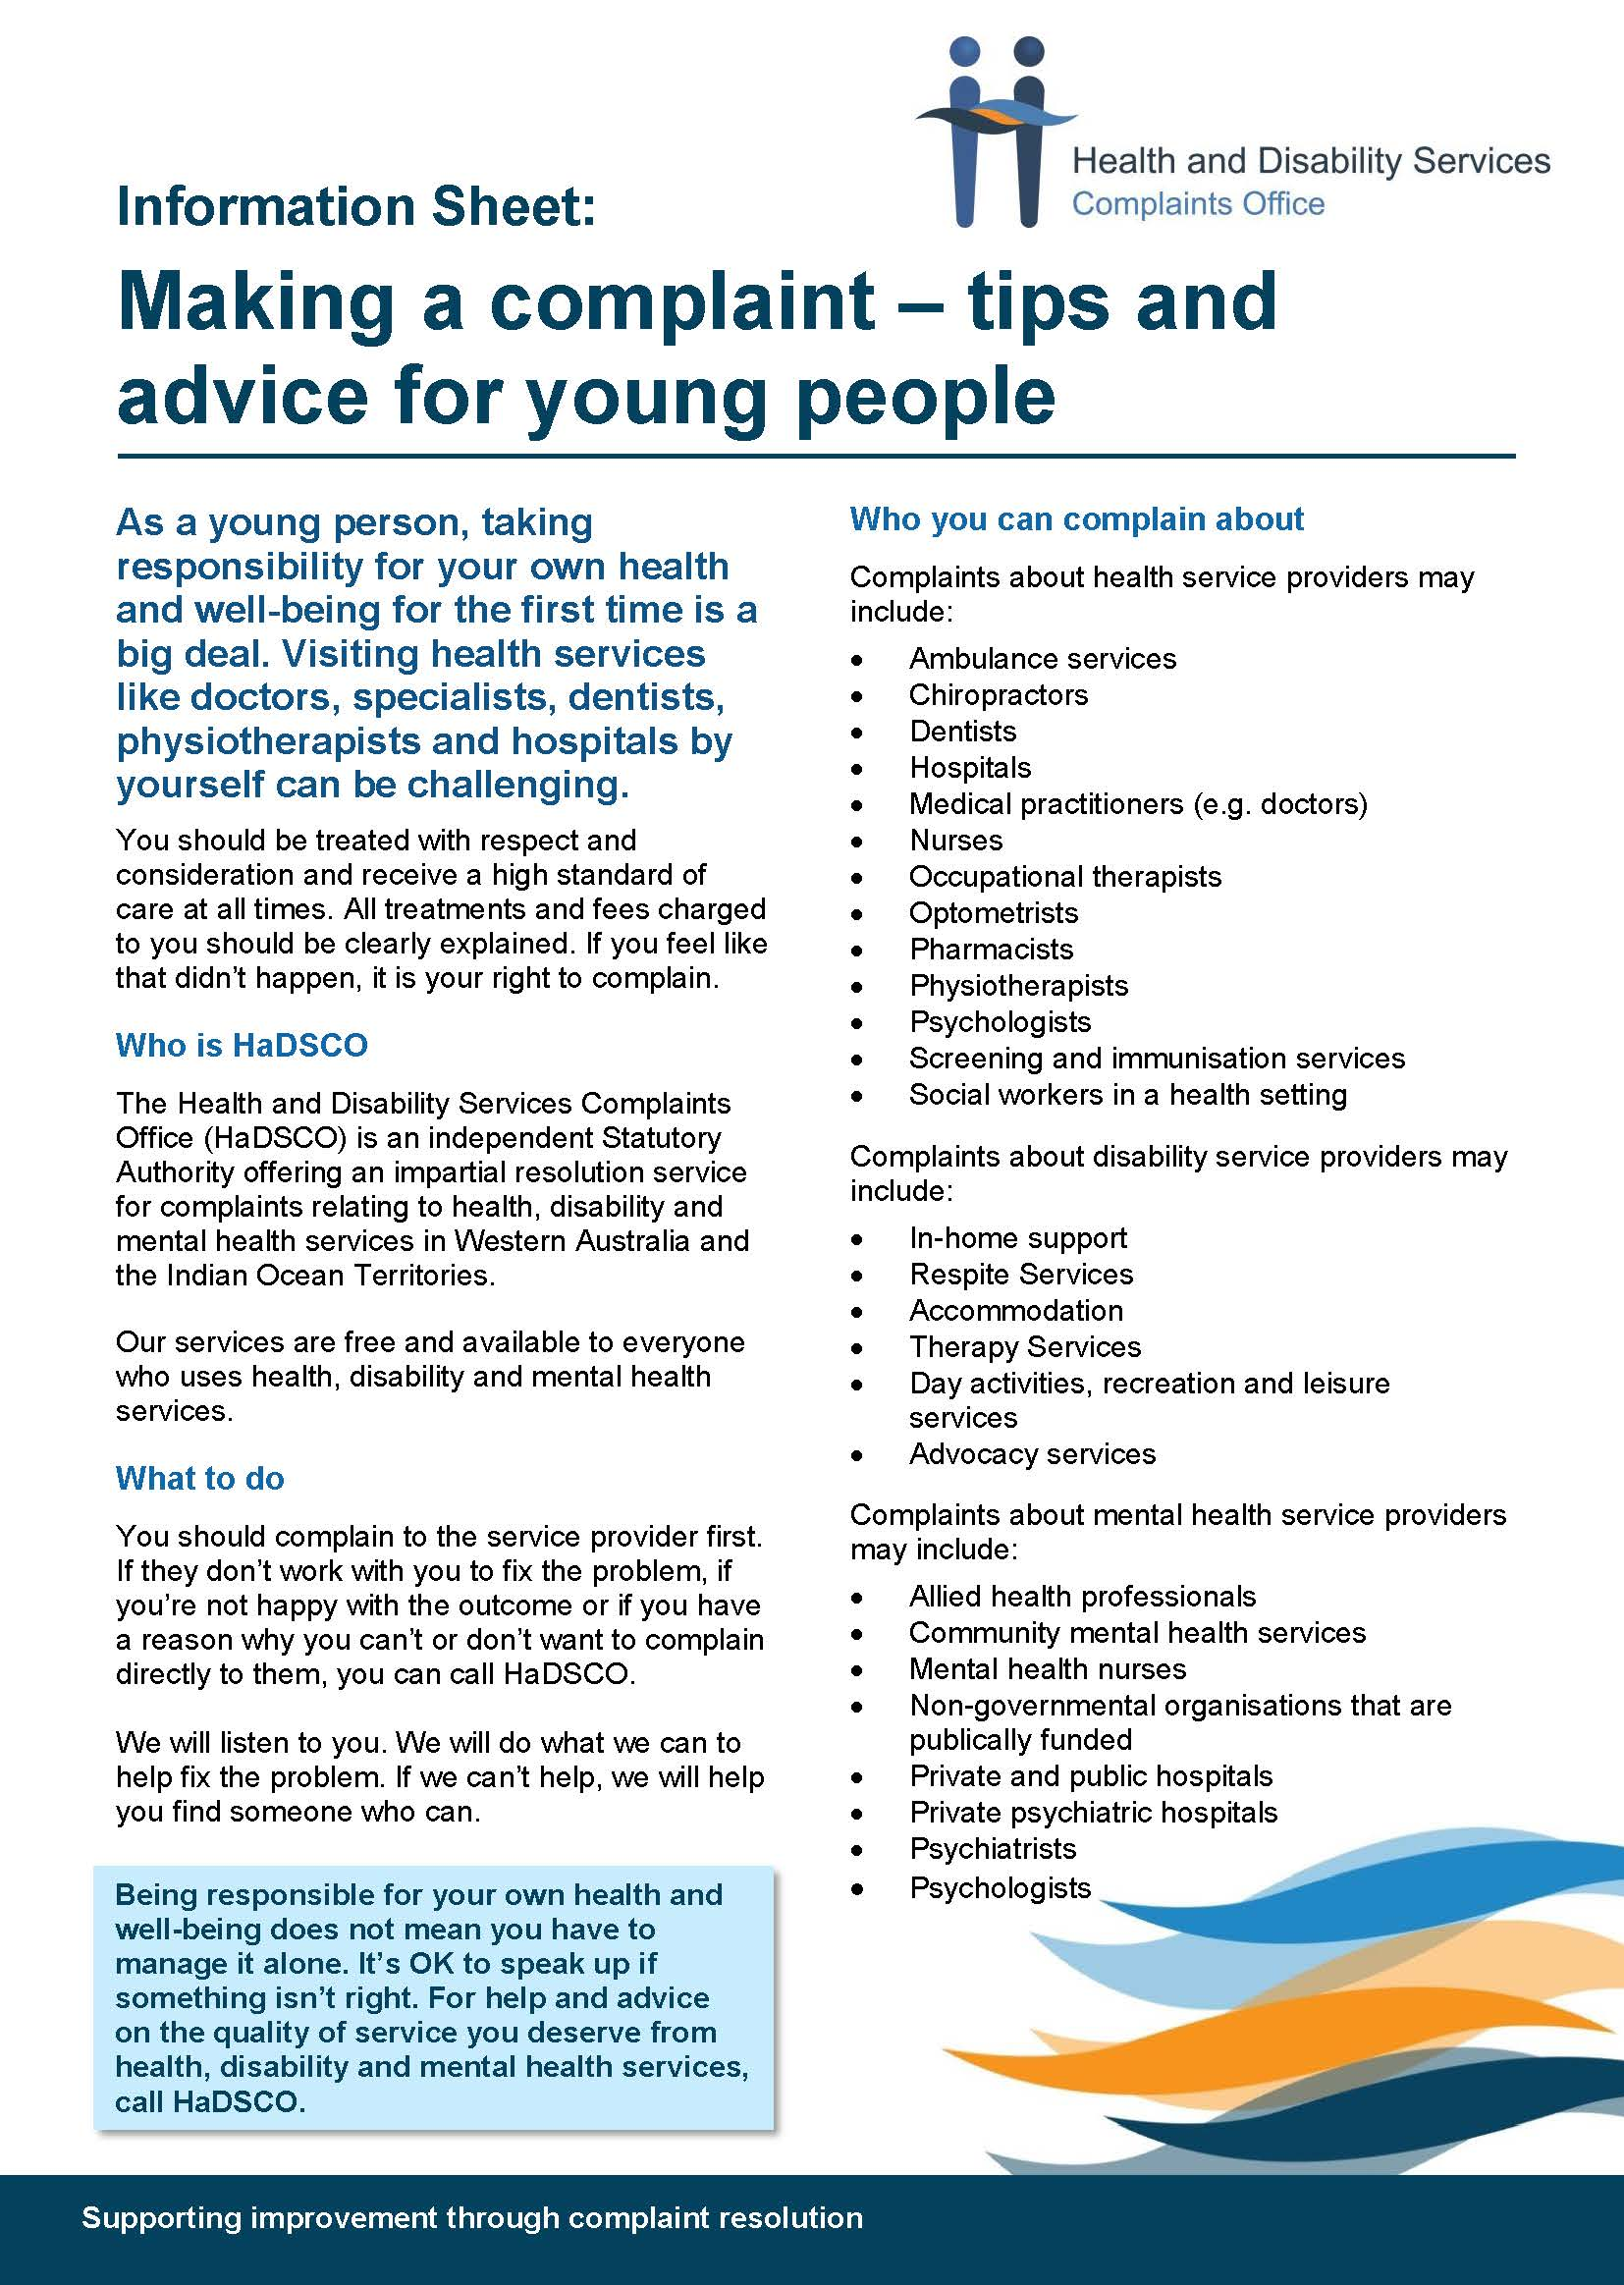 Image of Information Sheet - young people